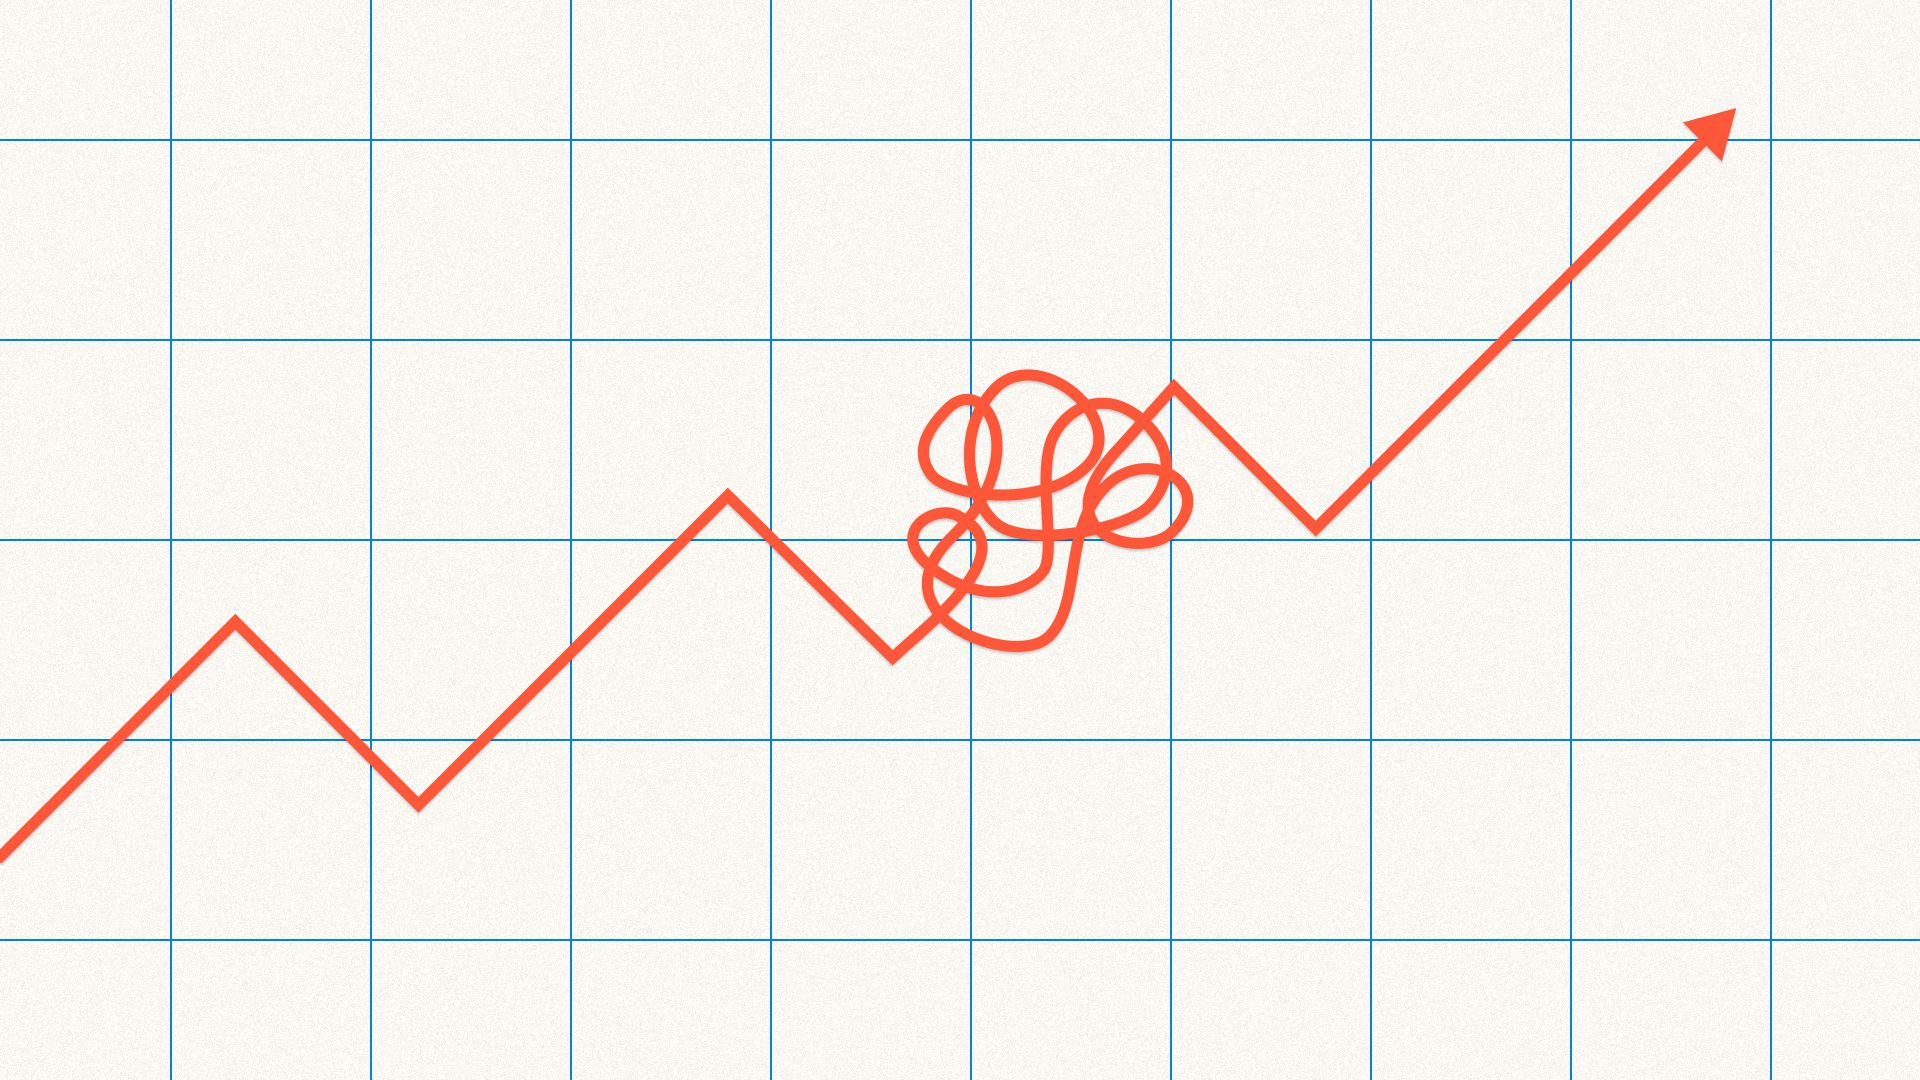 Illustration of an upward trending line graph with a knot in the middle